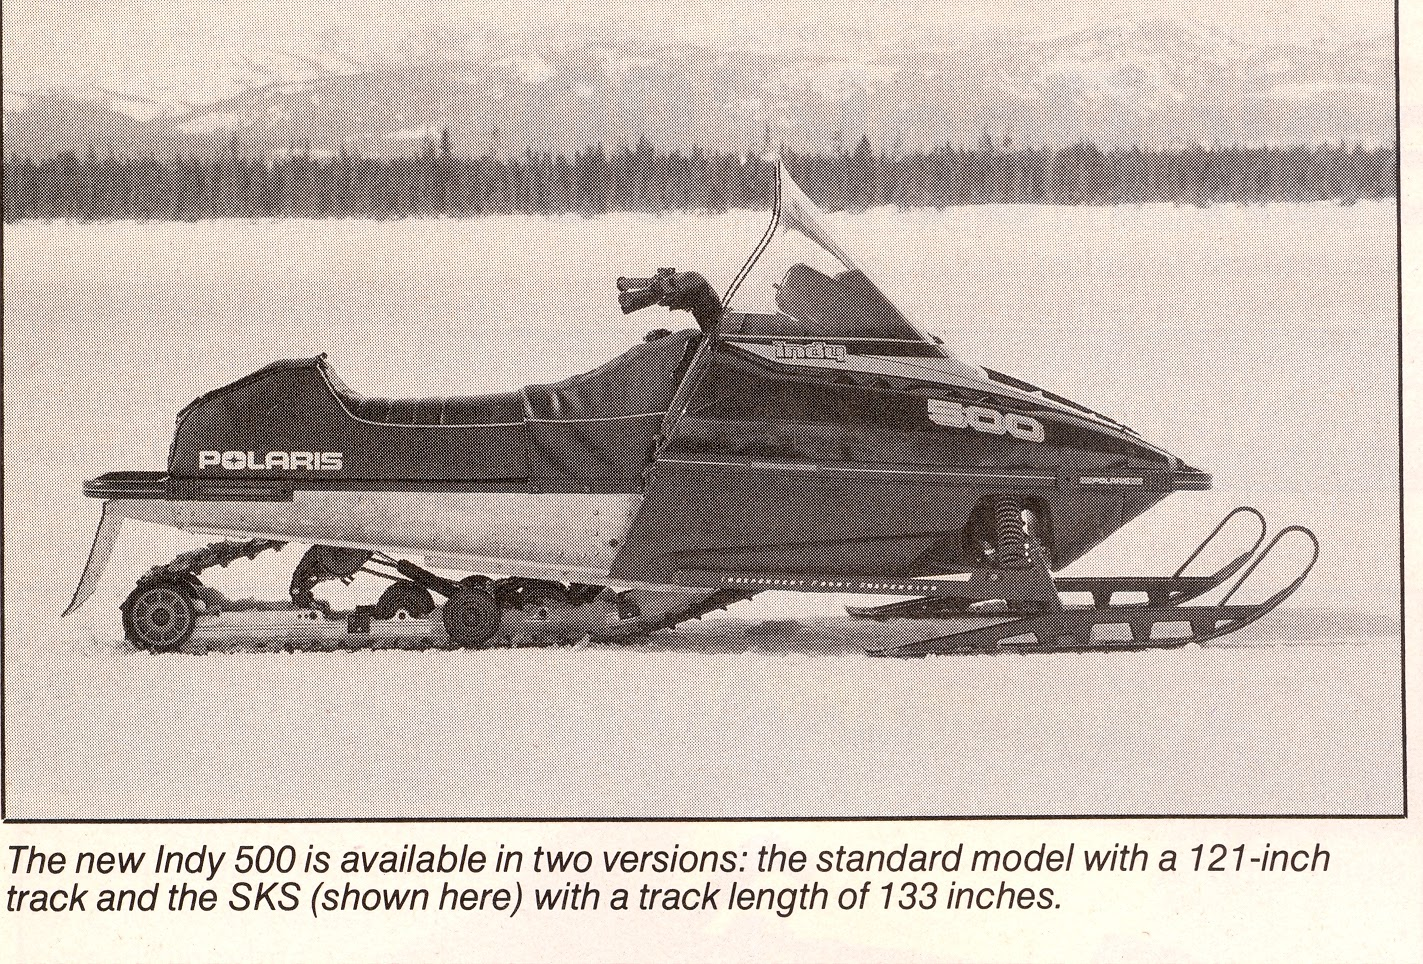 CLASSIC SNOWMOBILES OF THE PAST: 1989 POLARIS INDY 500